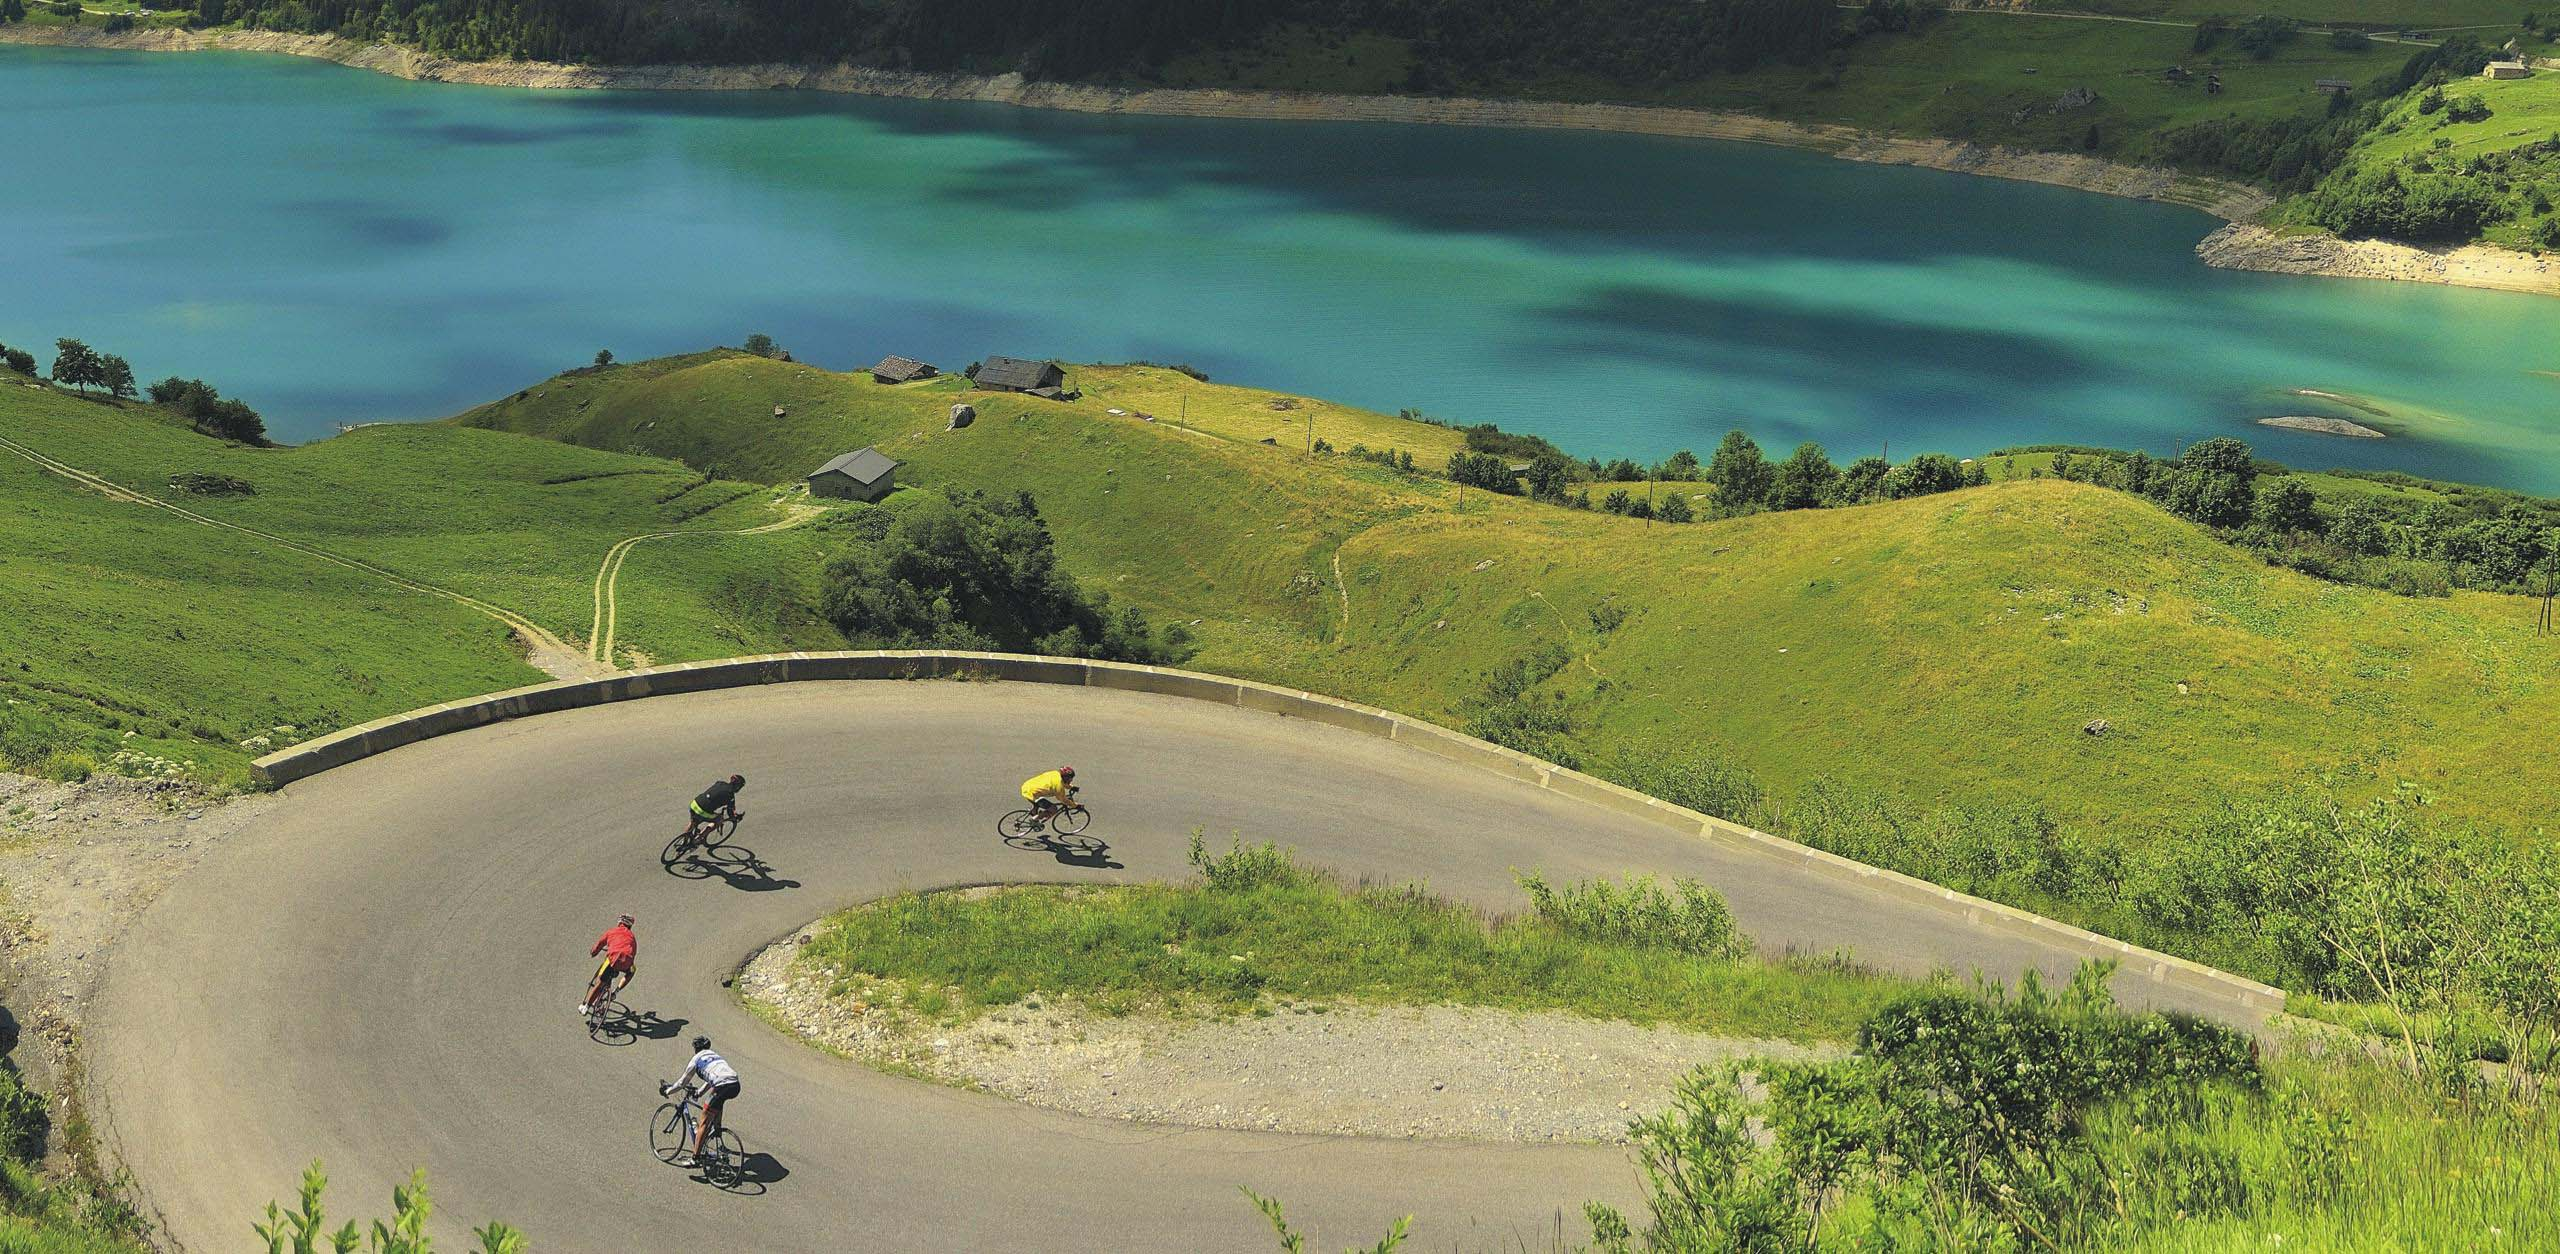 Guided road bike tours with Terra Bike Tours